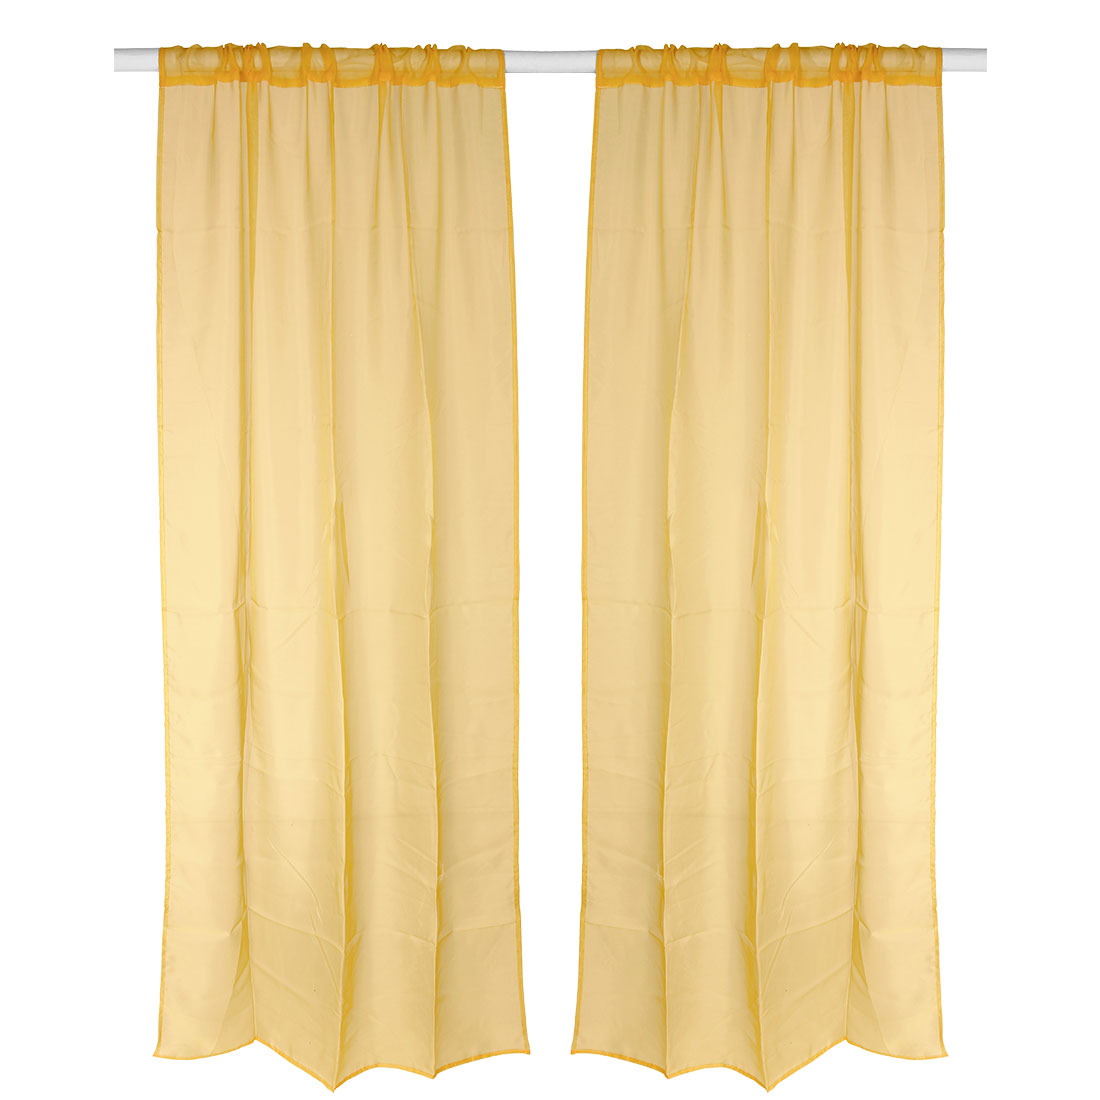 Bedroom Decorative Voile Panel Screen Window Sheer Curtain Orange 100 x 200cm